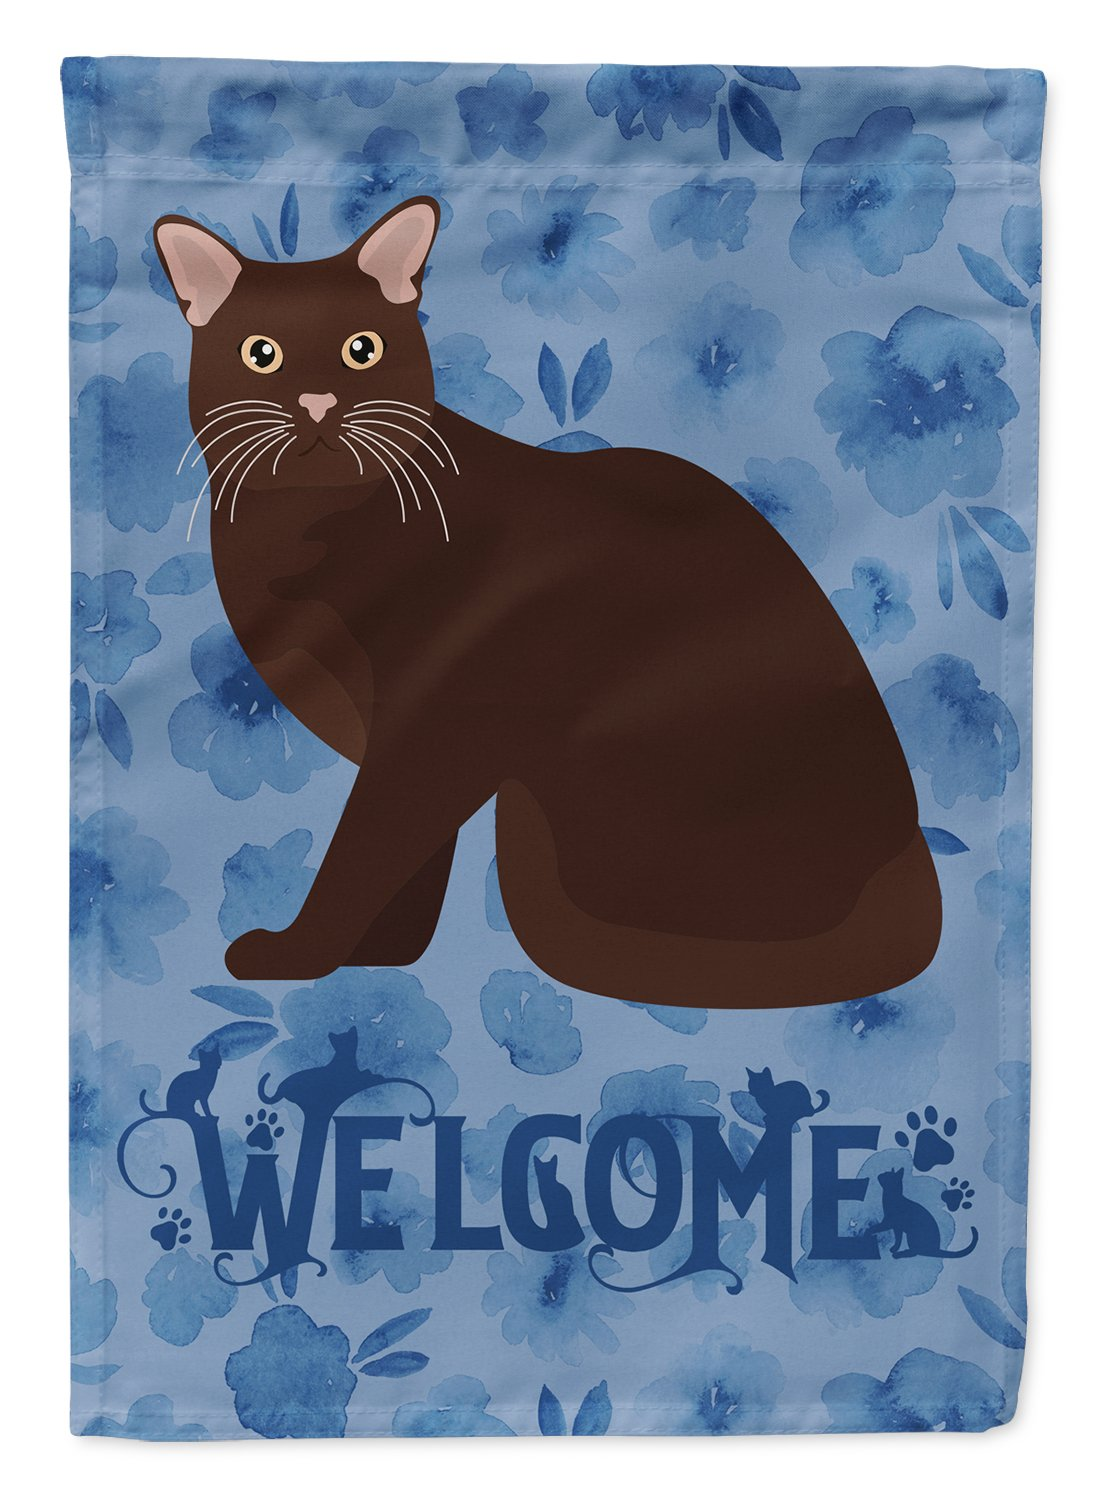 Burmese #2 Cat Welcome Flag Garden Size CK5020GF by Caroline's Treasures